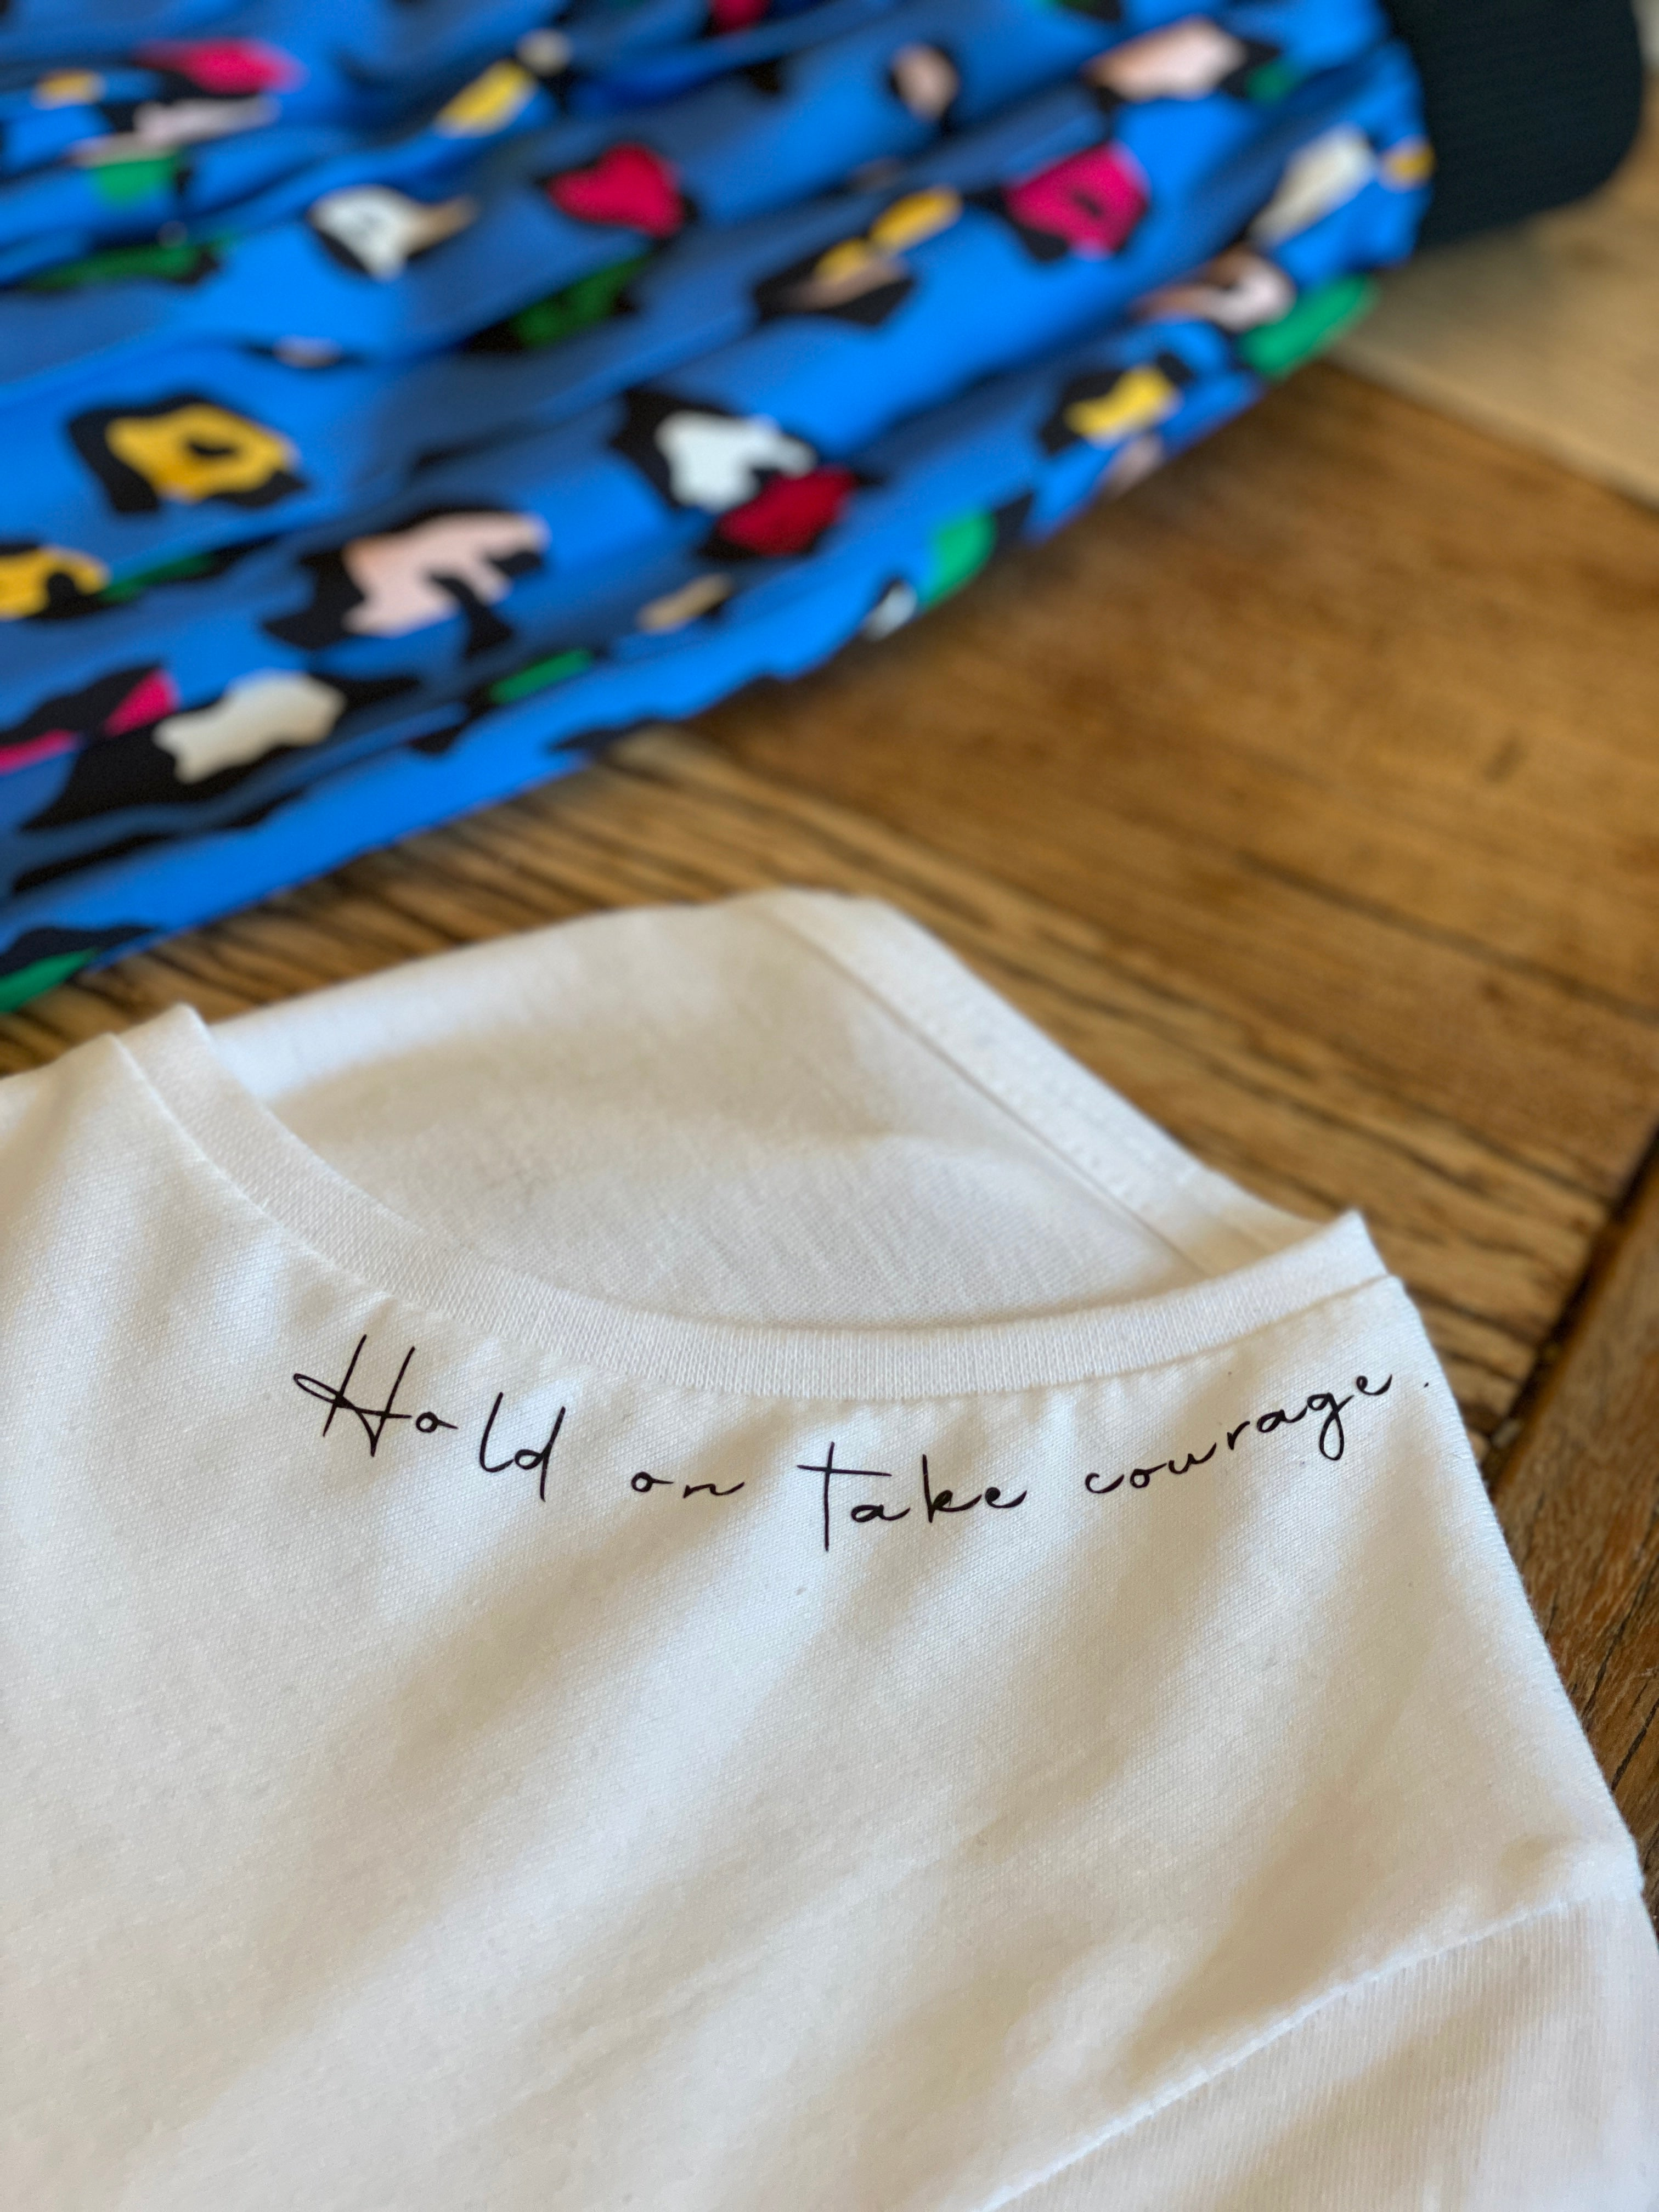 NFM hold on take courage tee